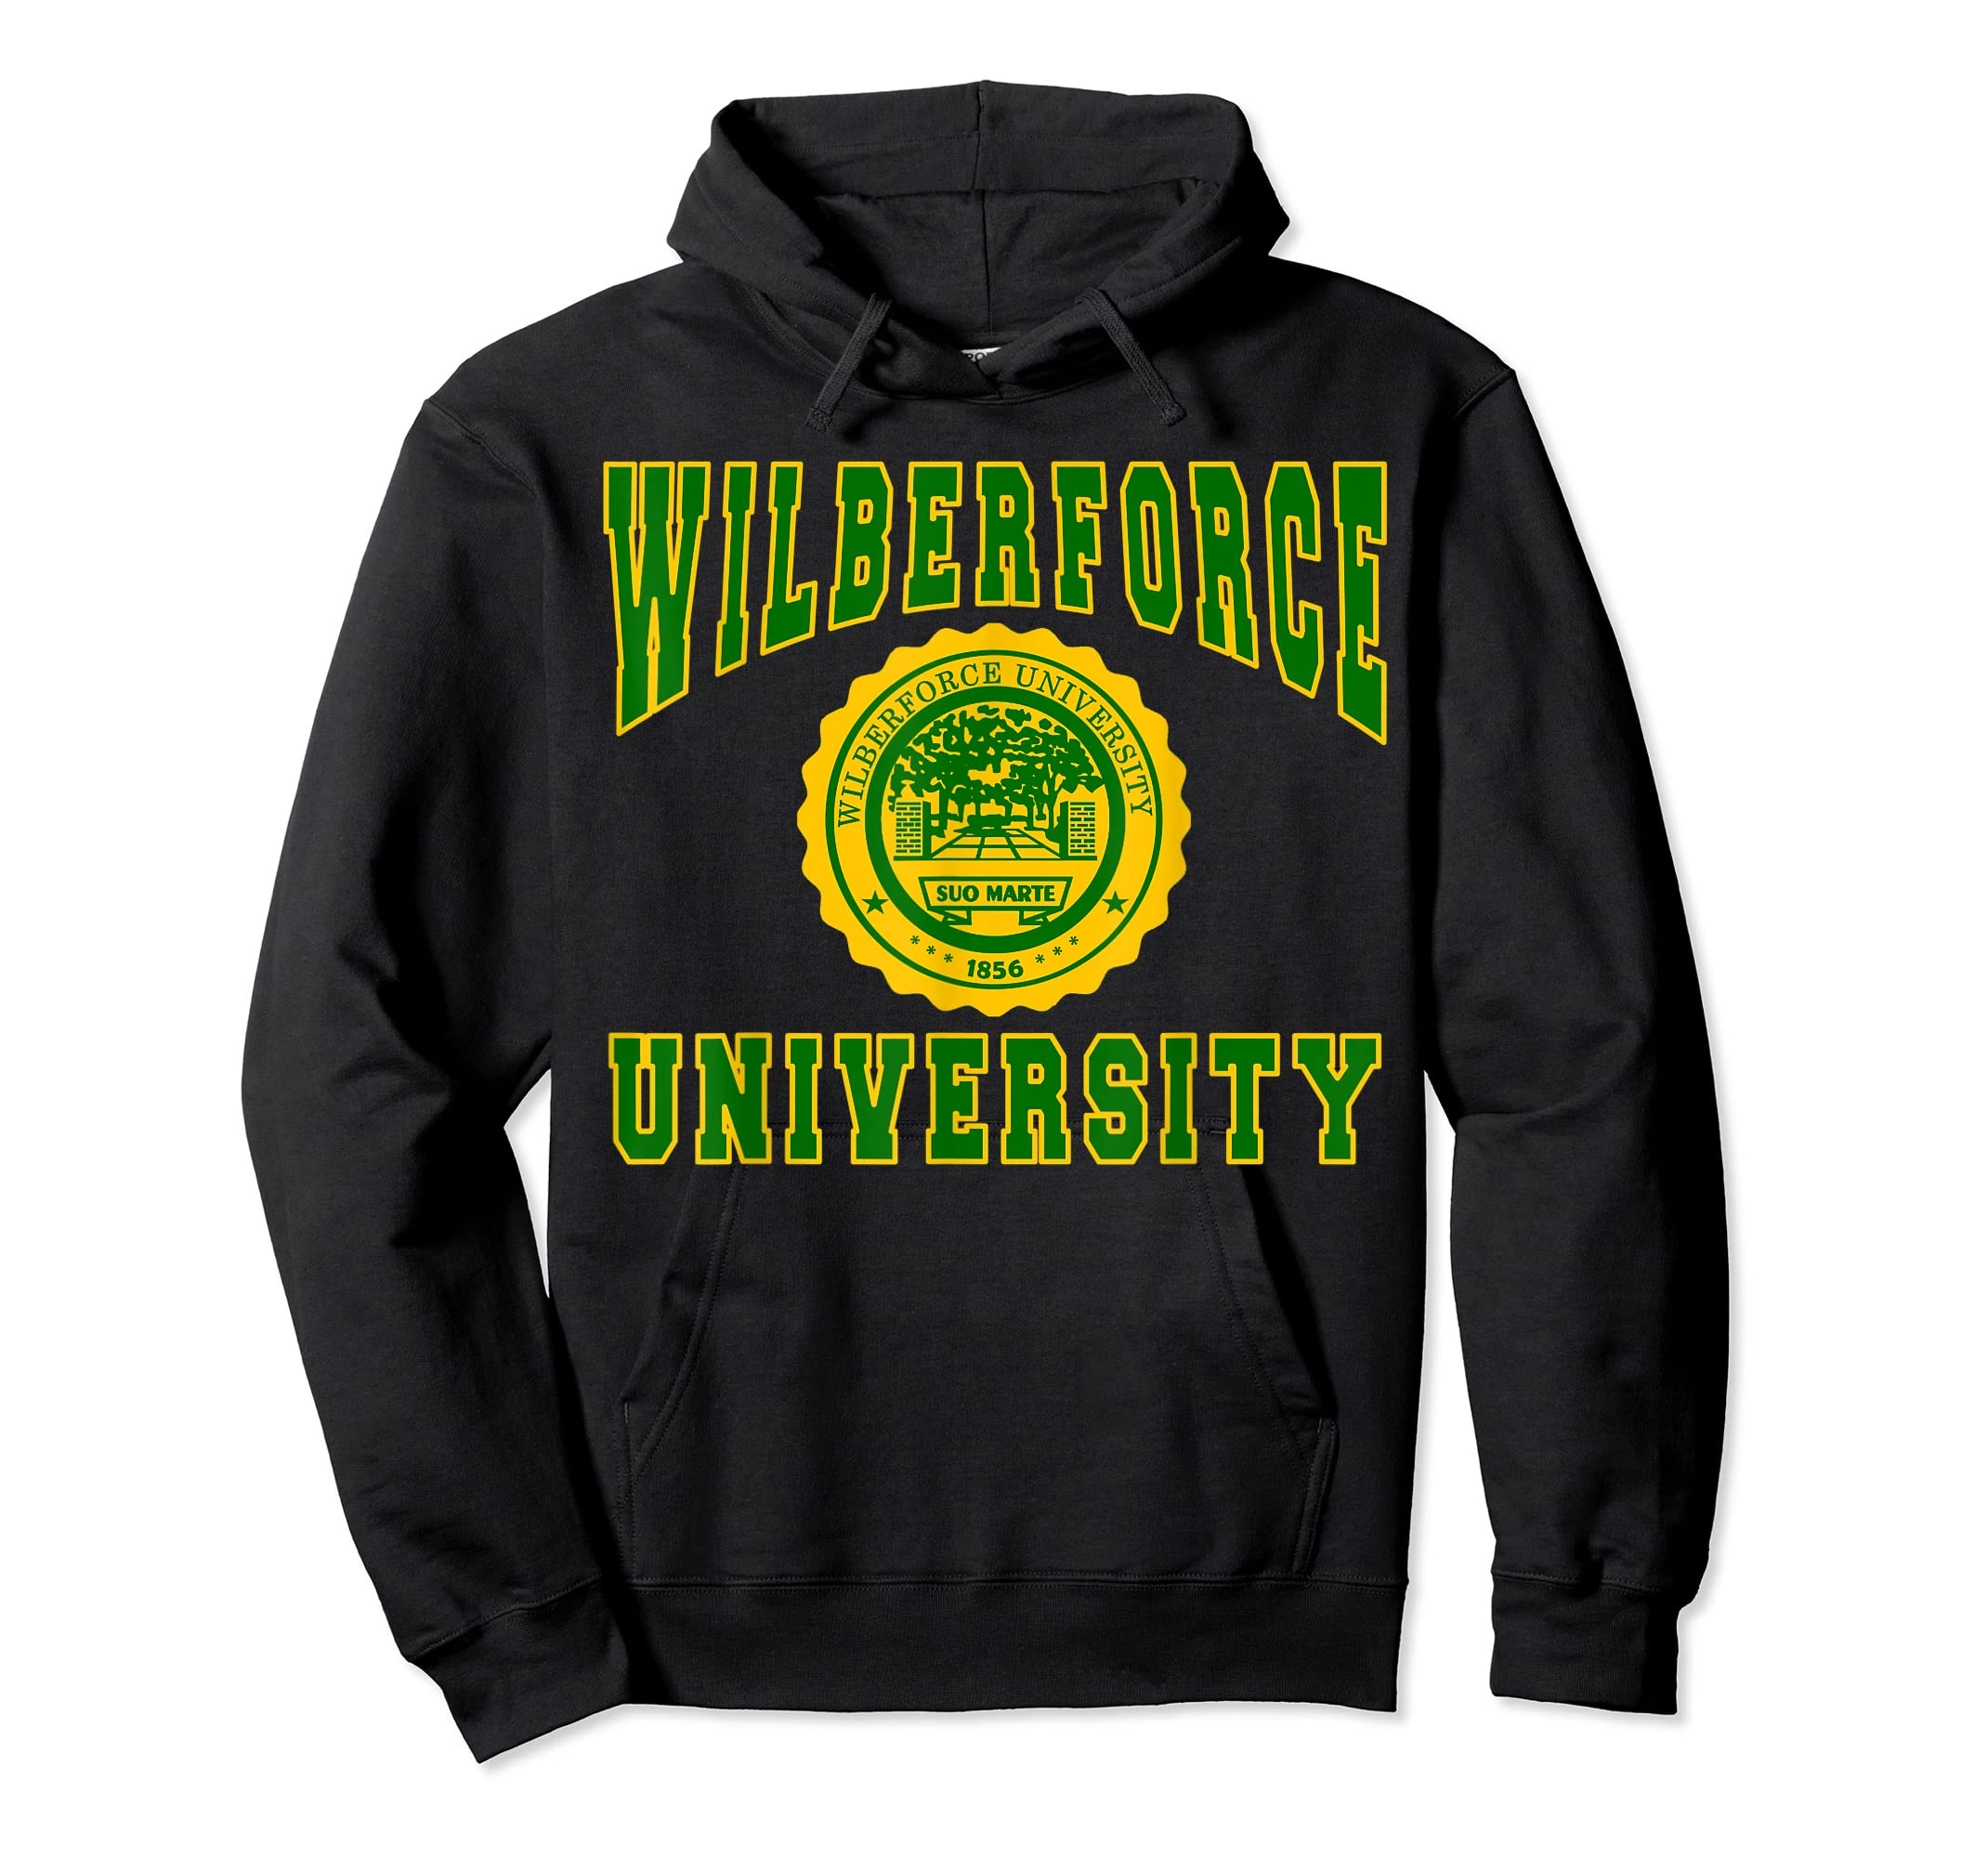 Wilberforce 1856 University Apparel - T shirt-Hoodie-Black